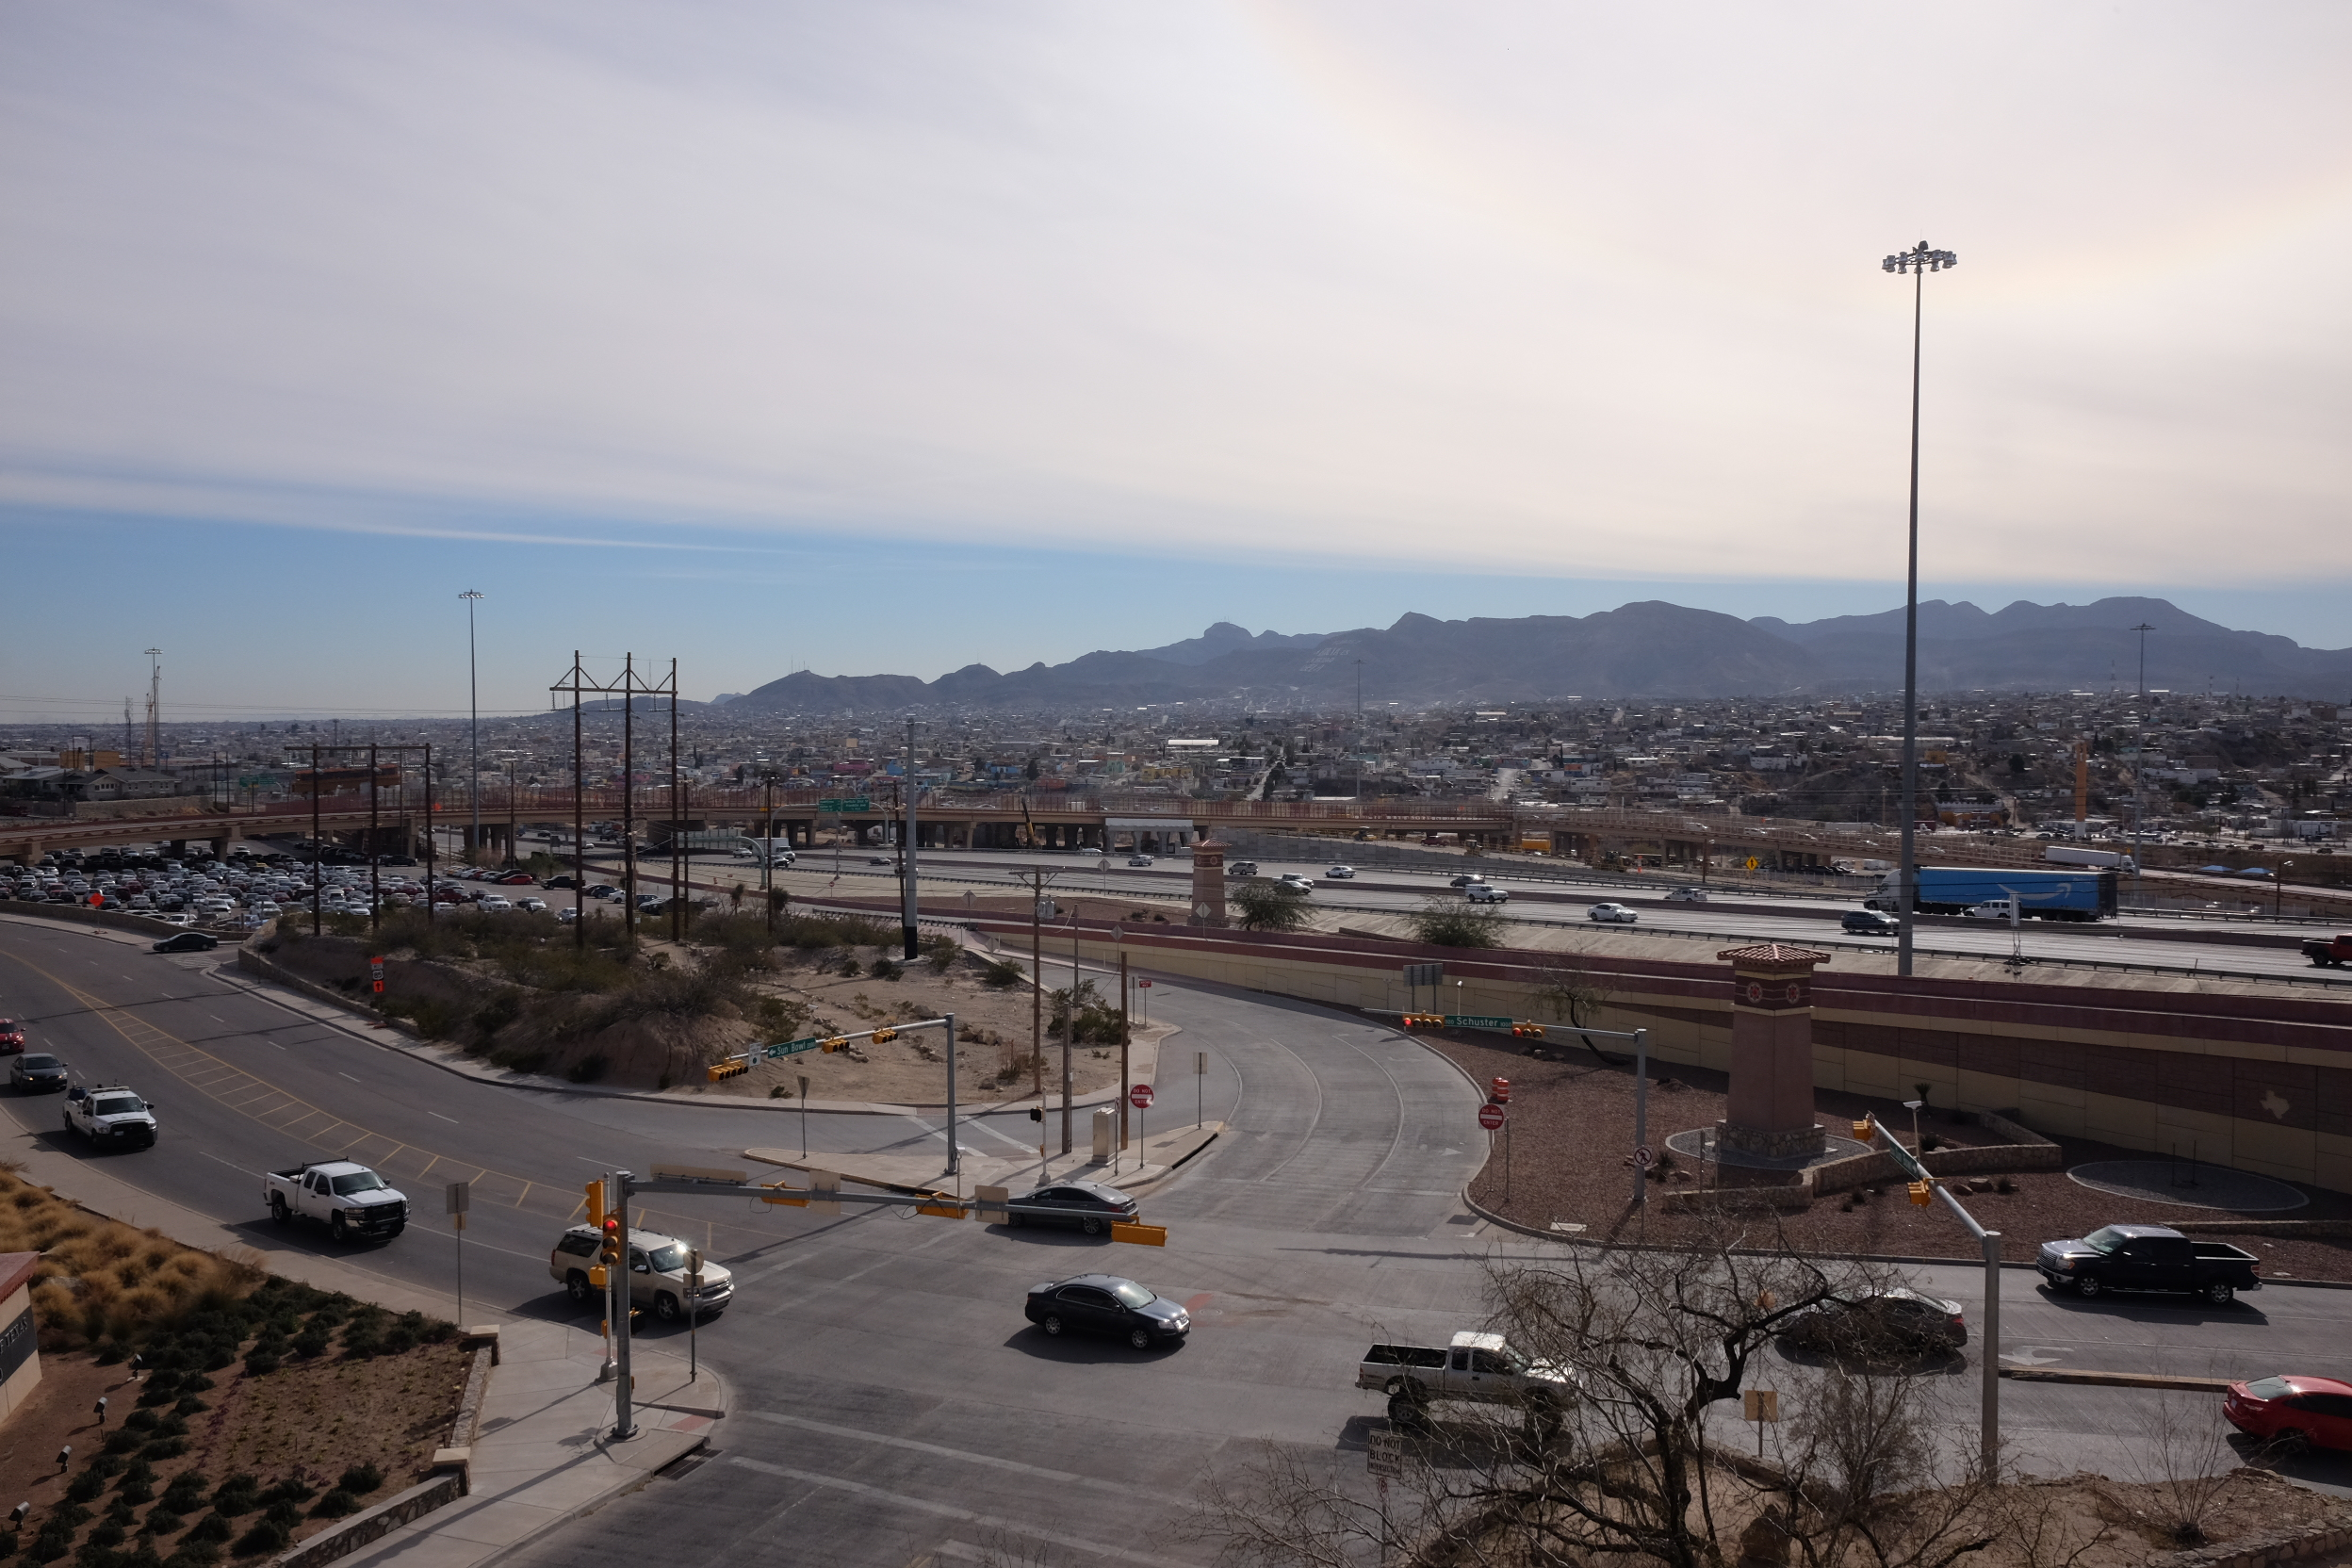 View over to Mexico from UTEP campus